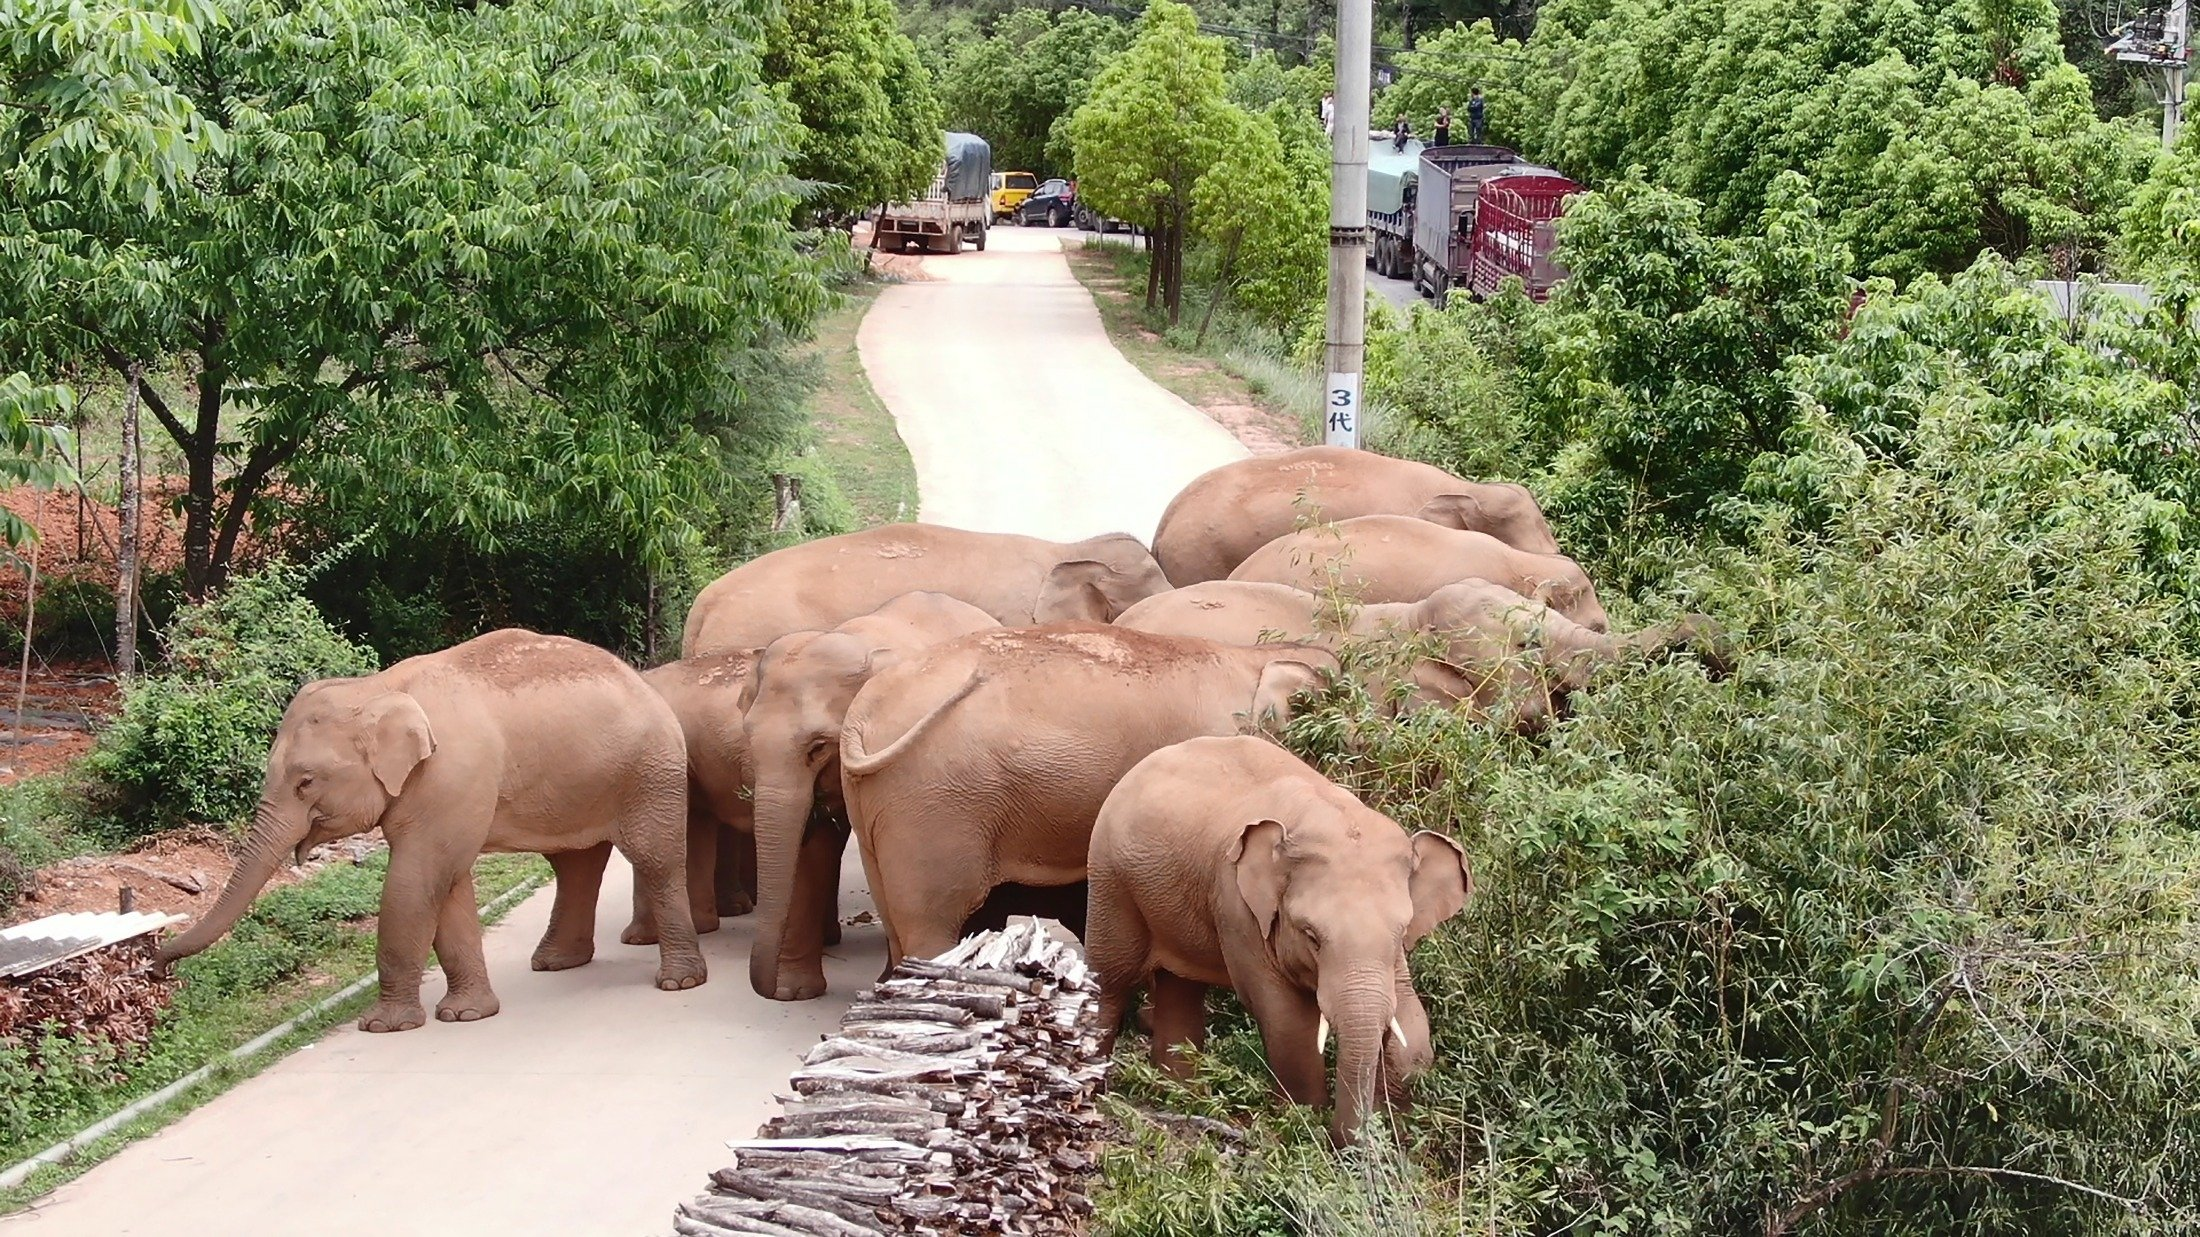 A migrating herd of elephants graze near Shuanghe Township, Jinning District of Kunming city in southwestern China's Yunnan Province, June 4, 2021. (Yunnan Forest Fire Brigade via AP)